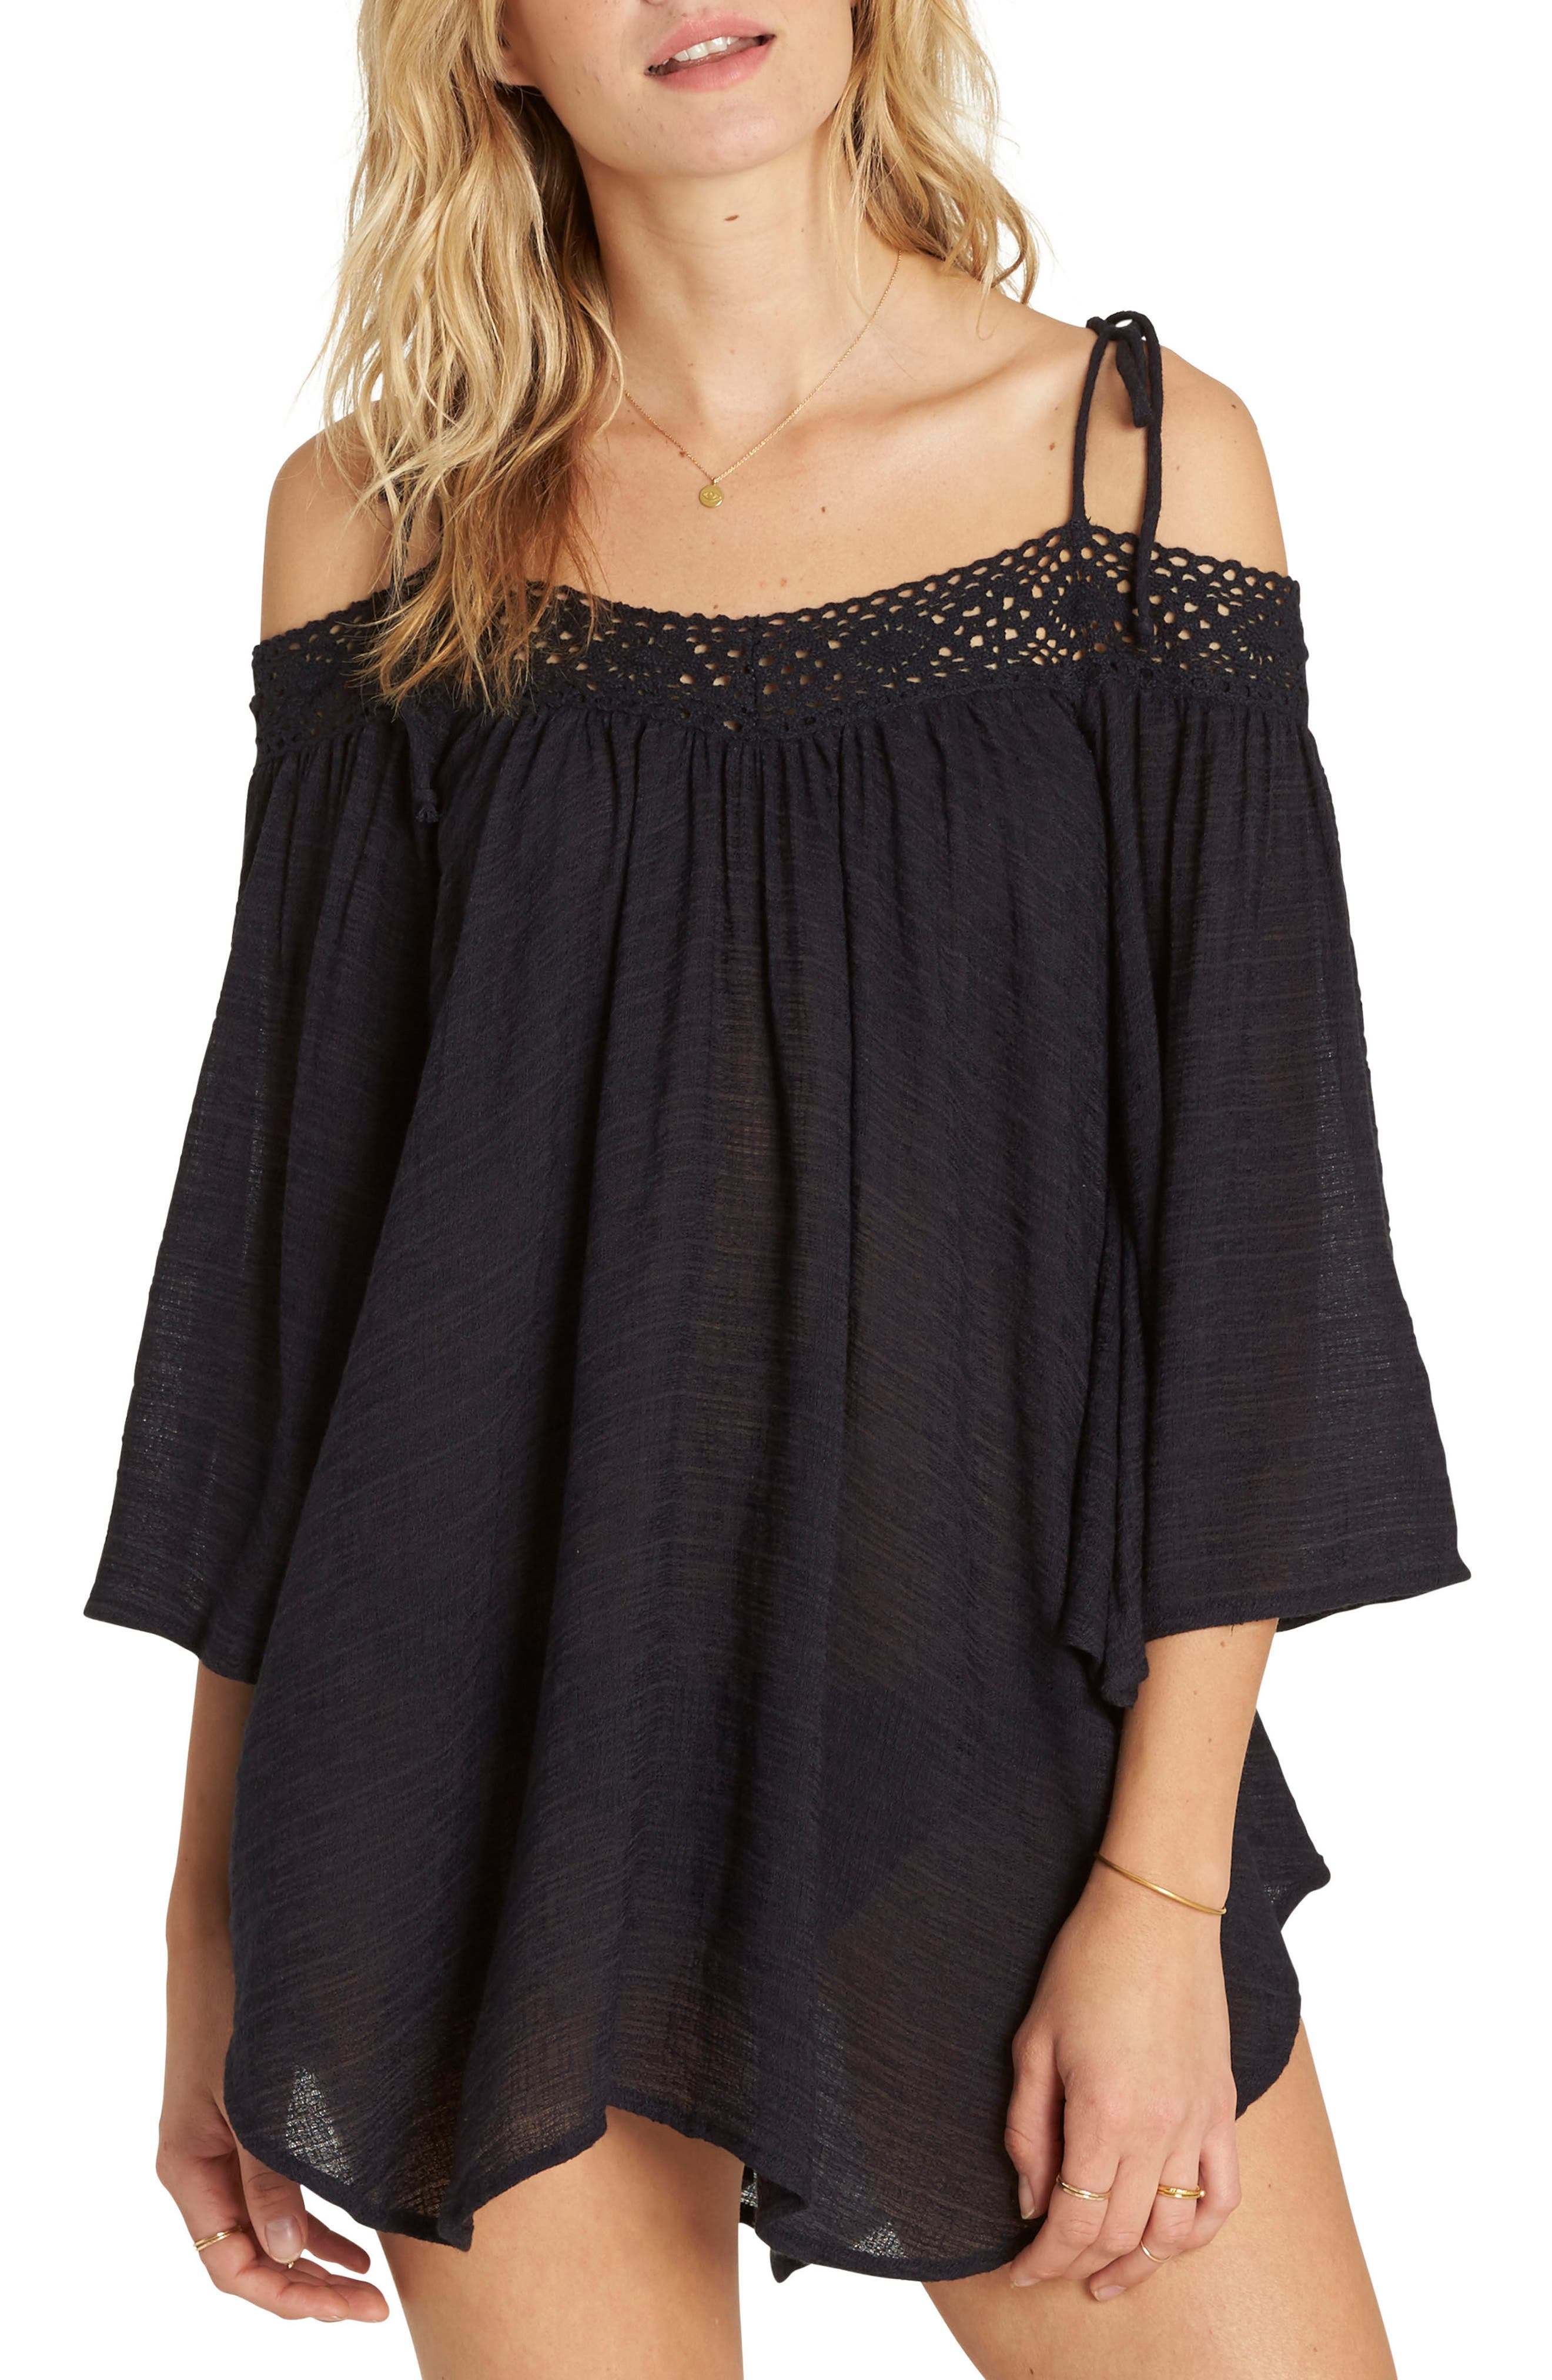 Breeze On Off the Shoulder Cover Up,                             Main thumbnail 1, color,                             007